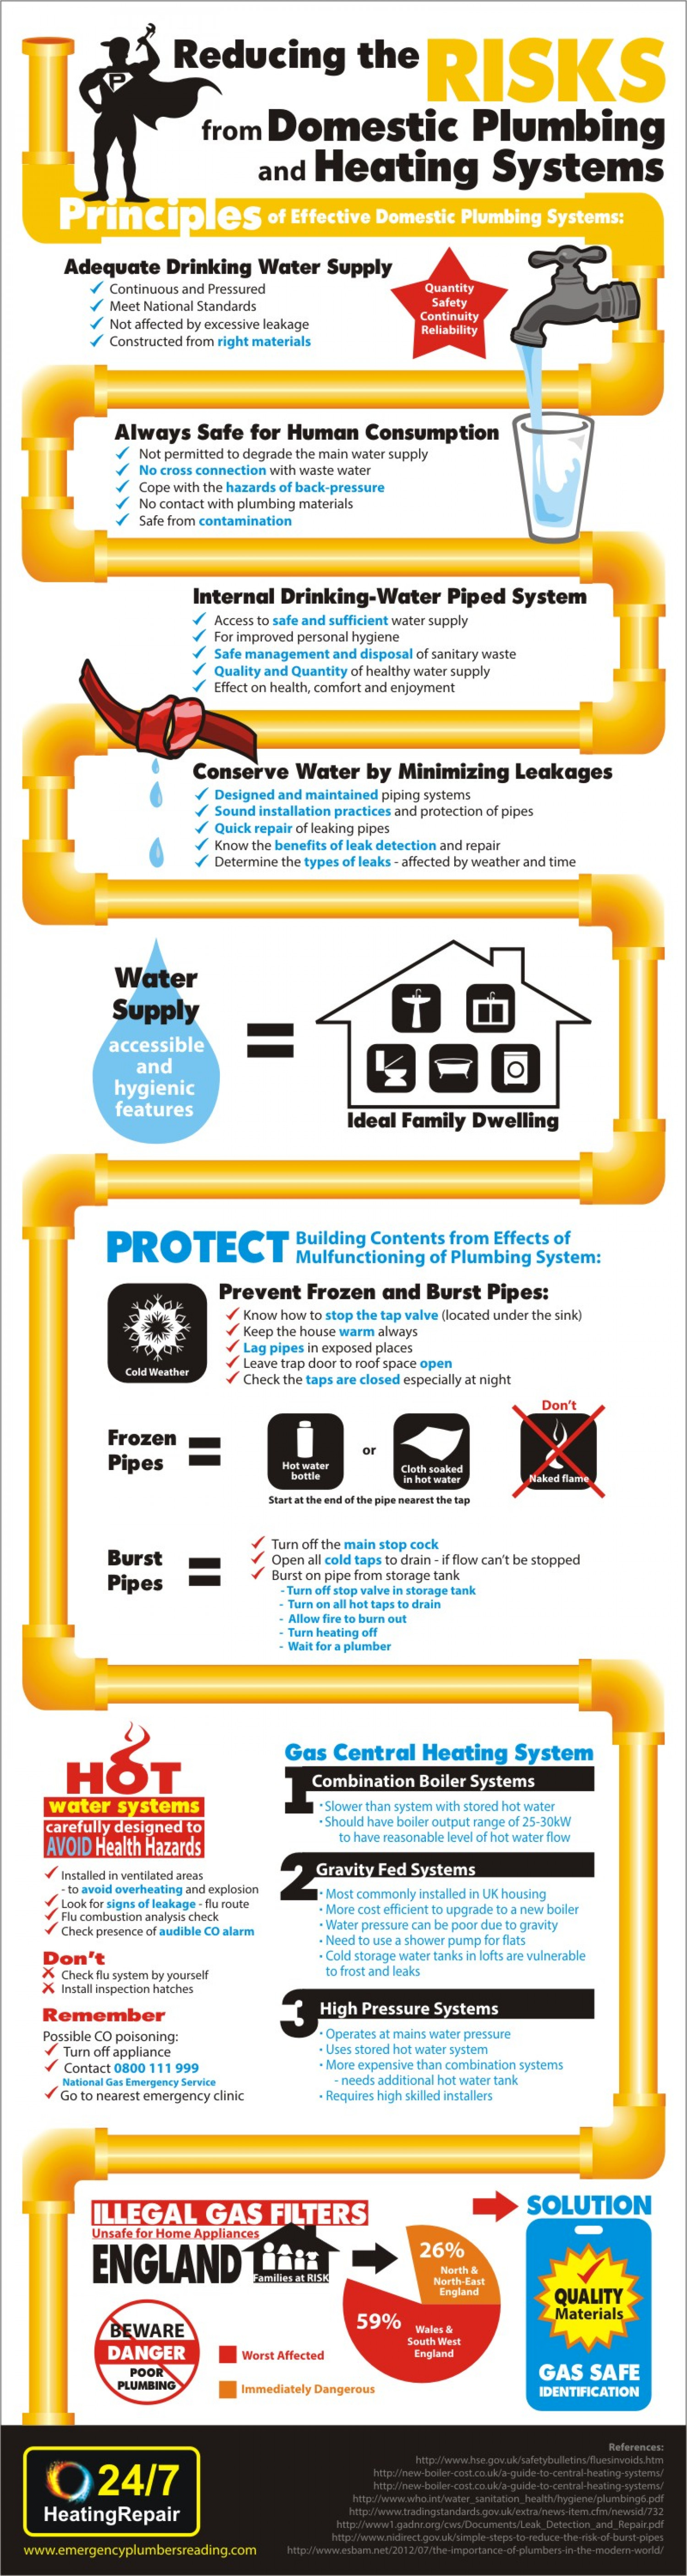 Reducing The Risks From Domestic Plumbing And Heating Systems Infographic